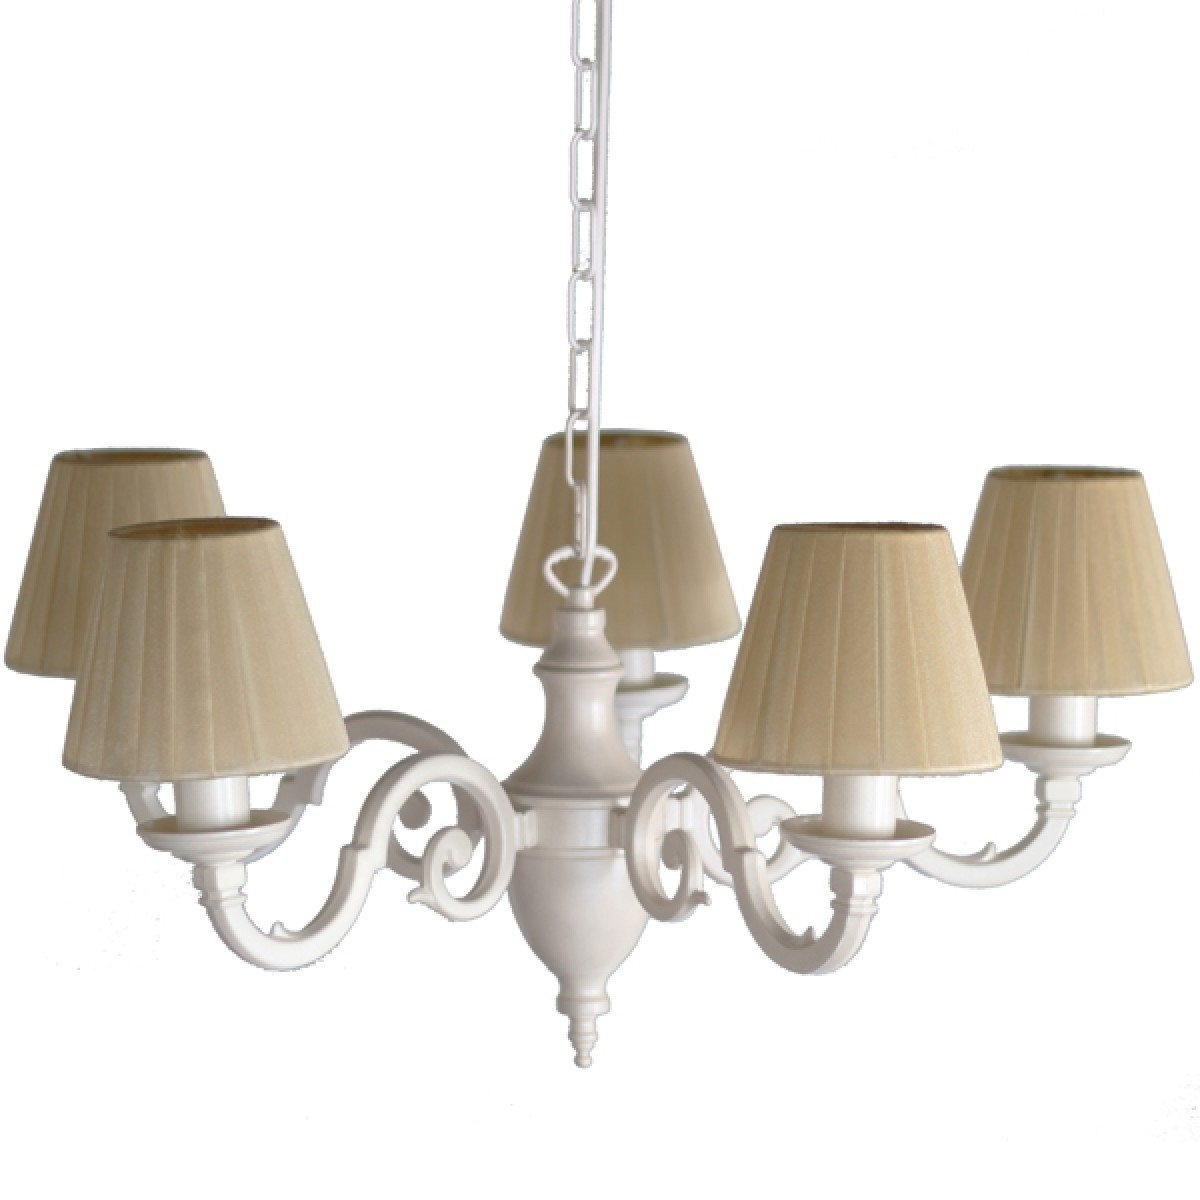 Cream Chandeliers Pertaining To Well Known Bedroom Light Fitting Chandelier (View 5 of 15)